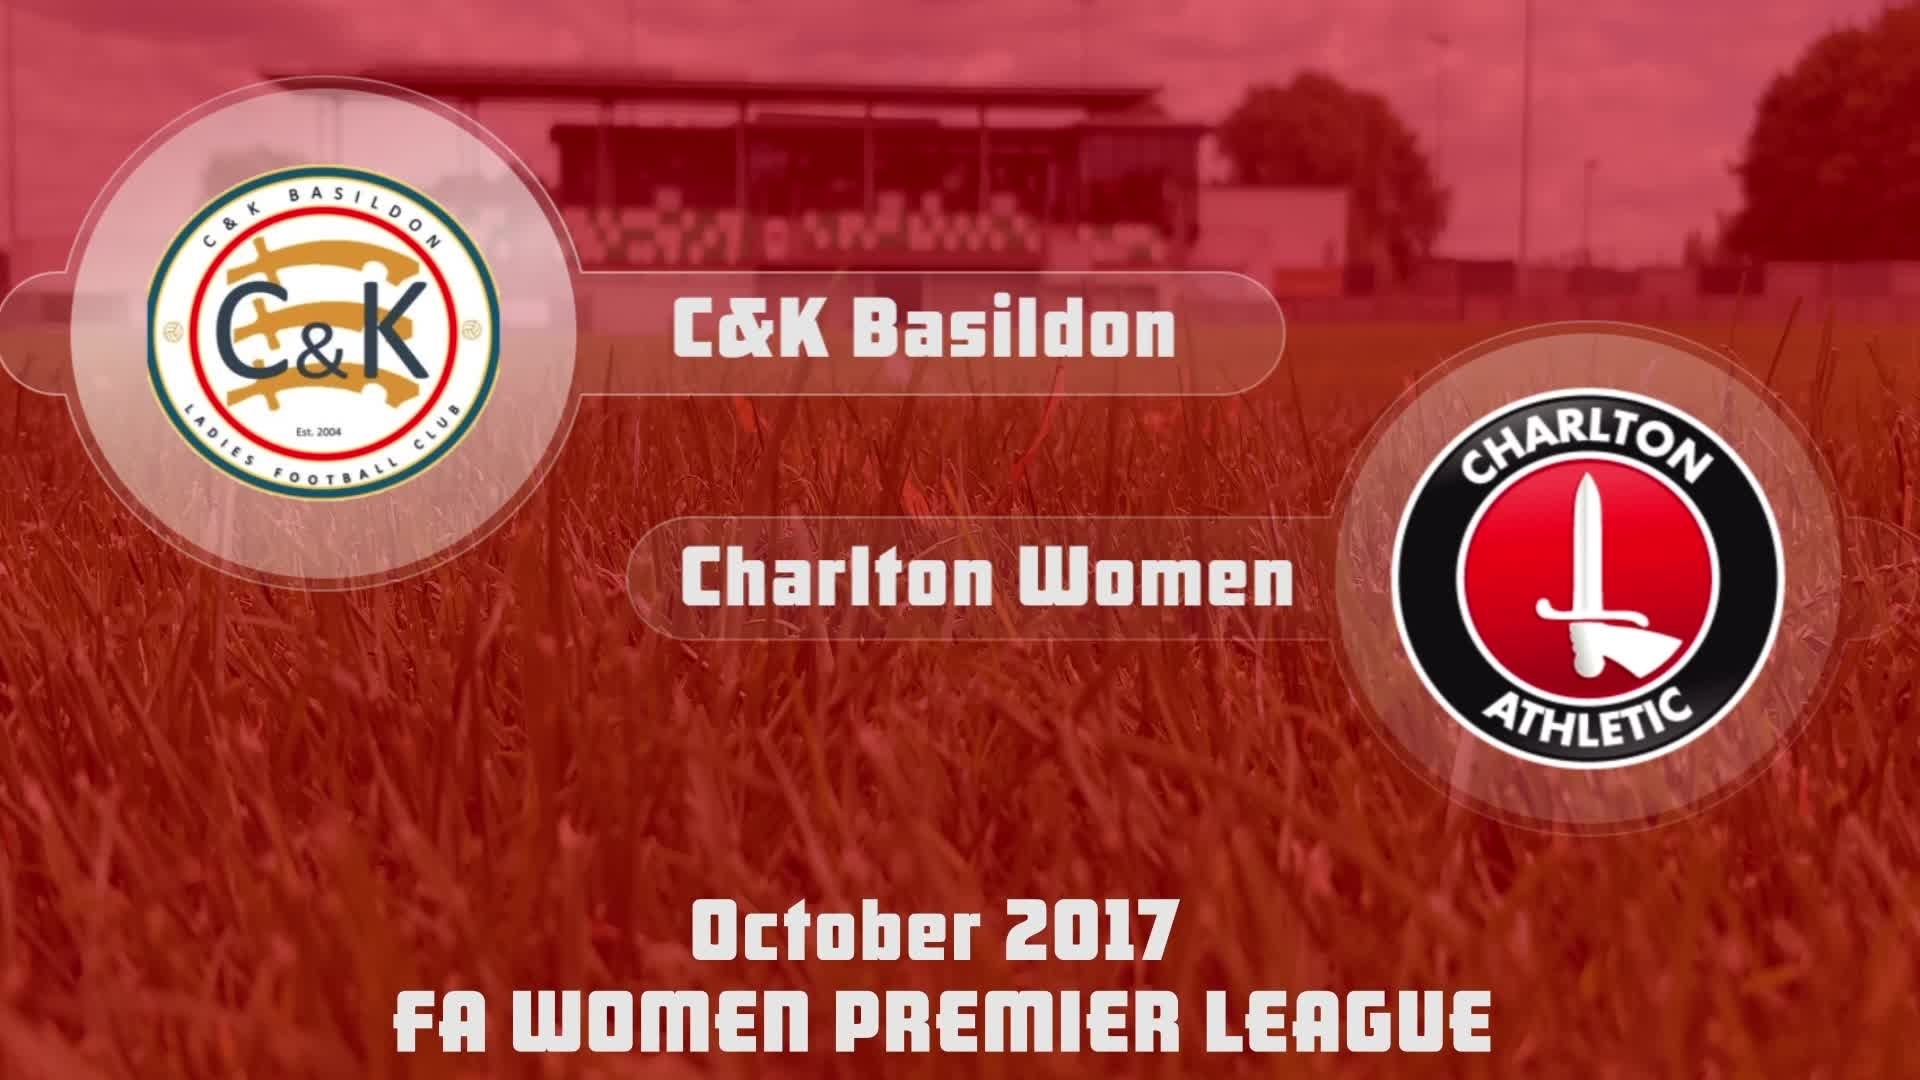 WOMEN HIGHLIGHTS | C&K Basildon 2 Charlton 1 (Oct 2017)